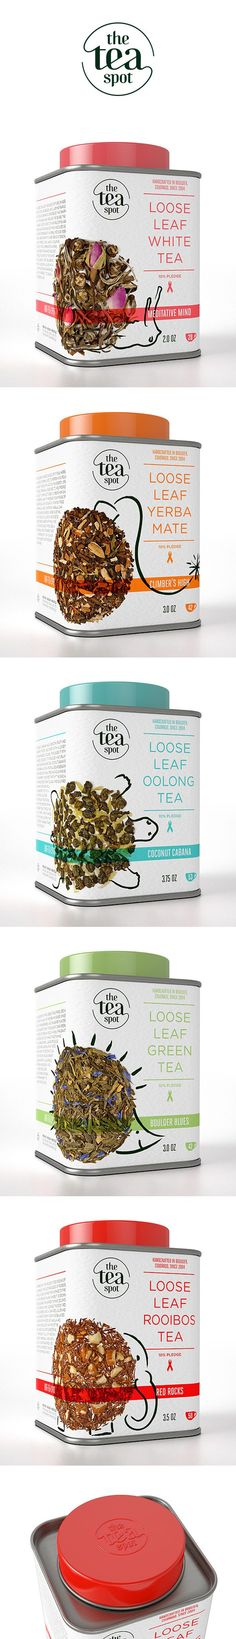 The Tea Spot - Brand Identity & Packagings: